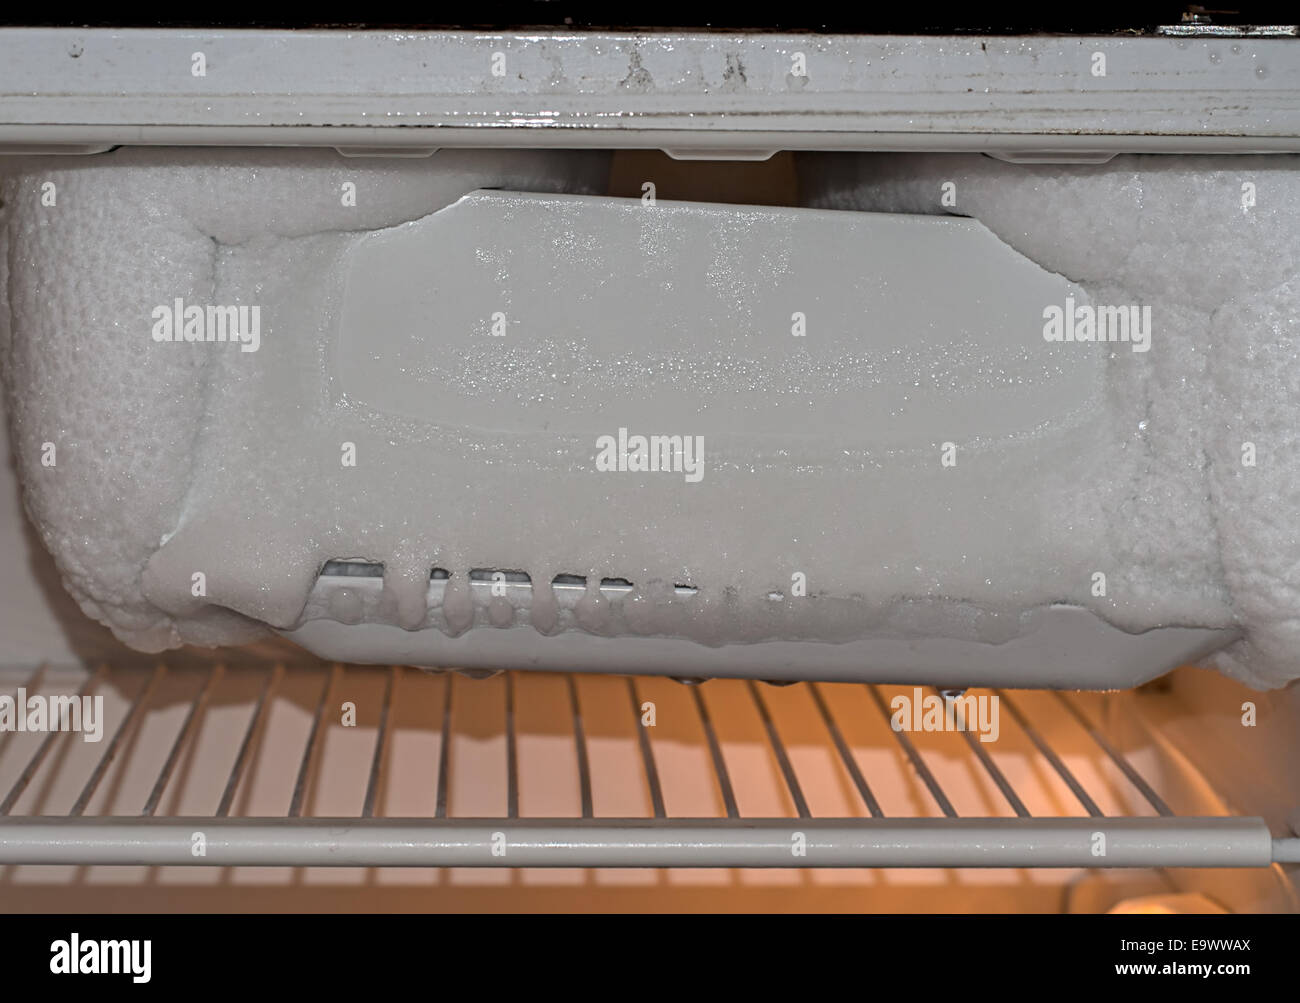 Domestic chore - defrost ice box fridge - Stock Image